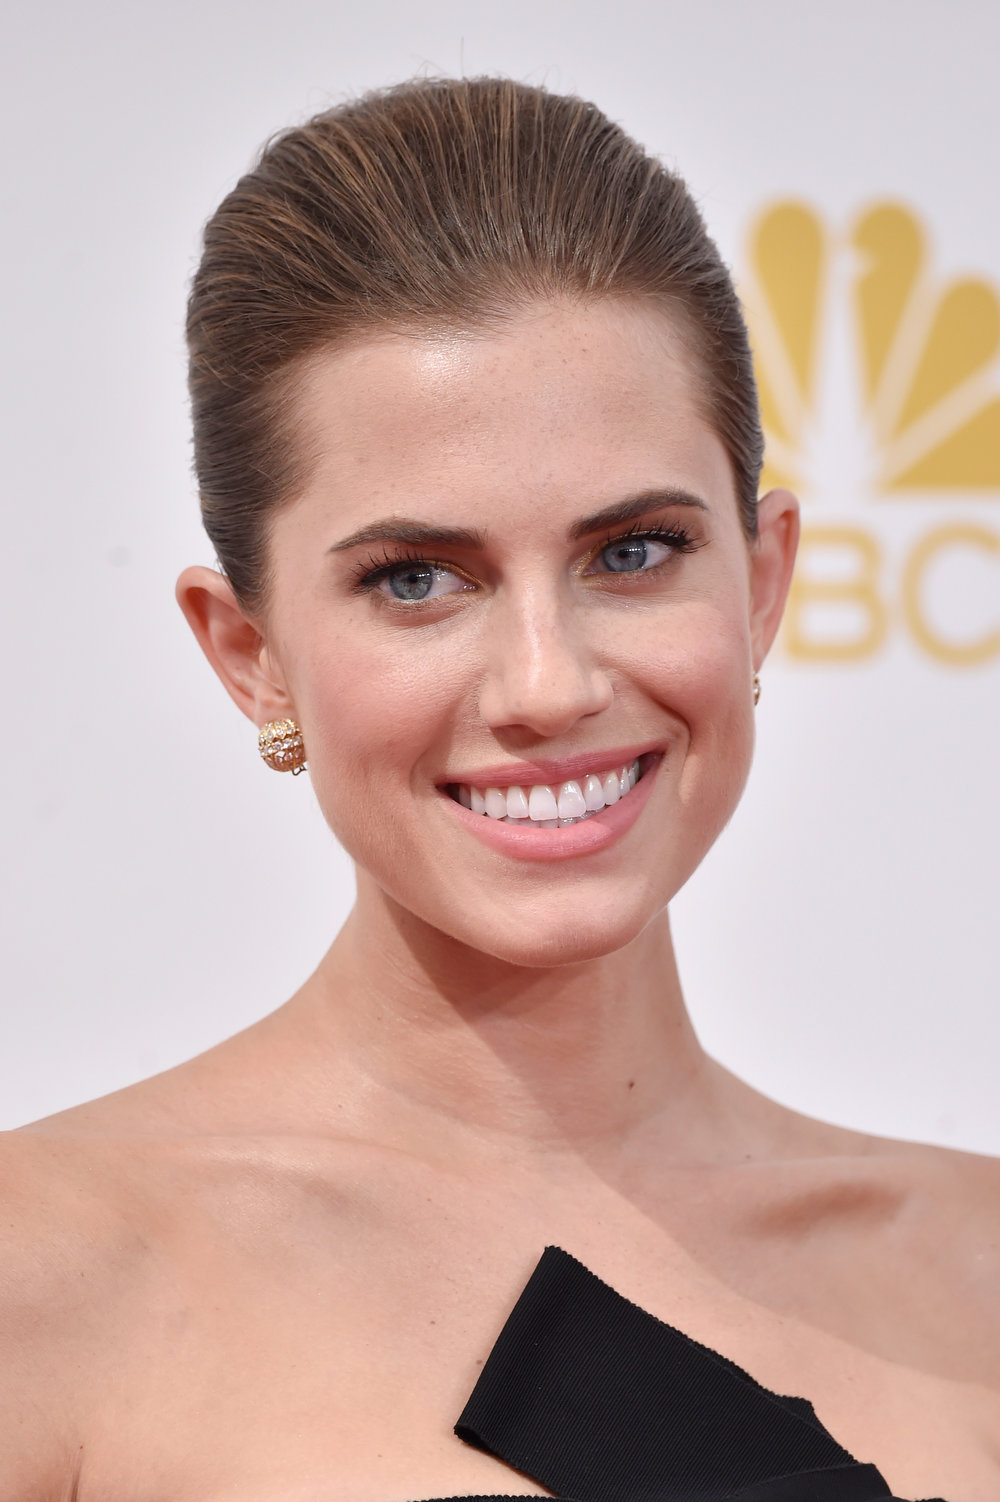 . Actress Allison Williams attends the 66th Annual Primetime Emmy Awards held at Nokia Theatre L.A. Live on August 25, 2014 in Los Angeles, California.  (Photo by Frazer Harrison/Getty Images)